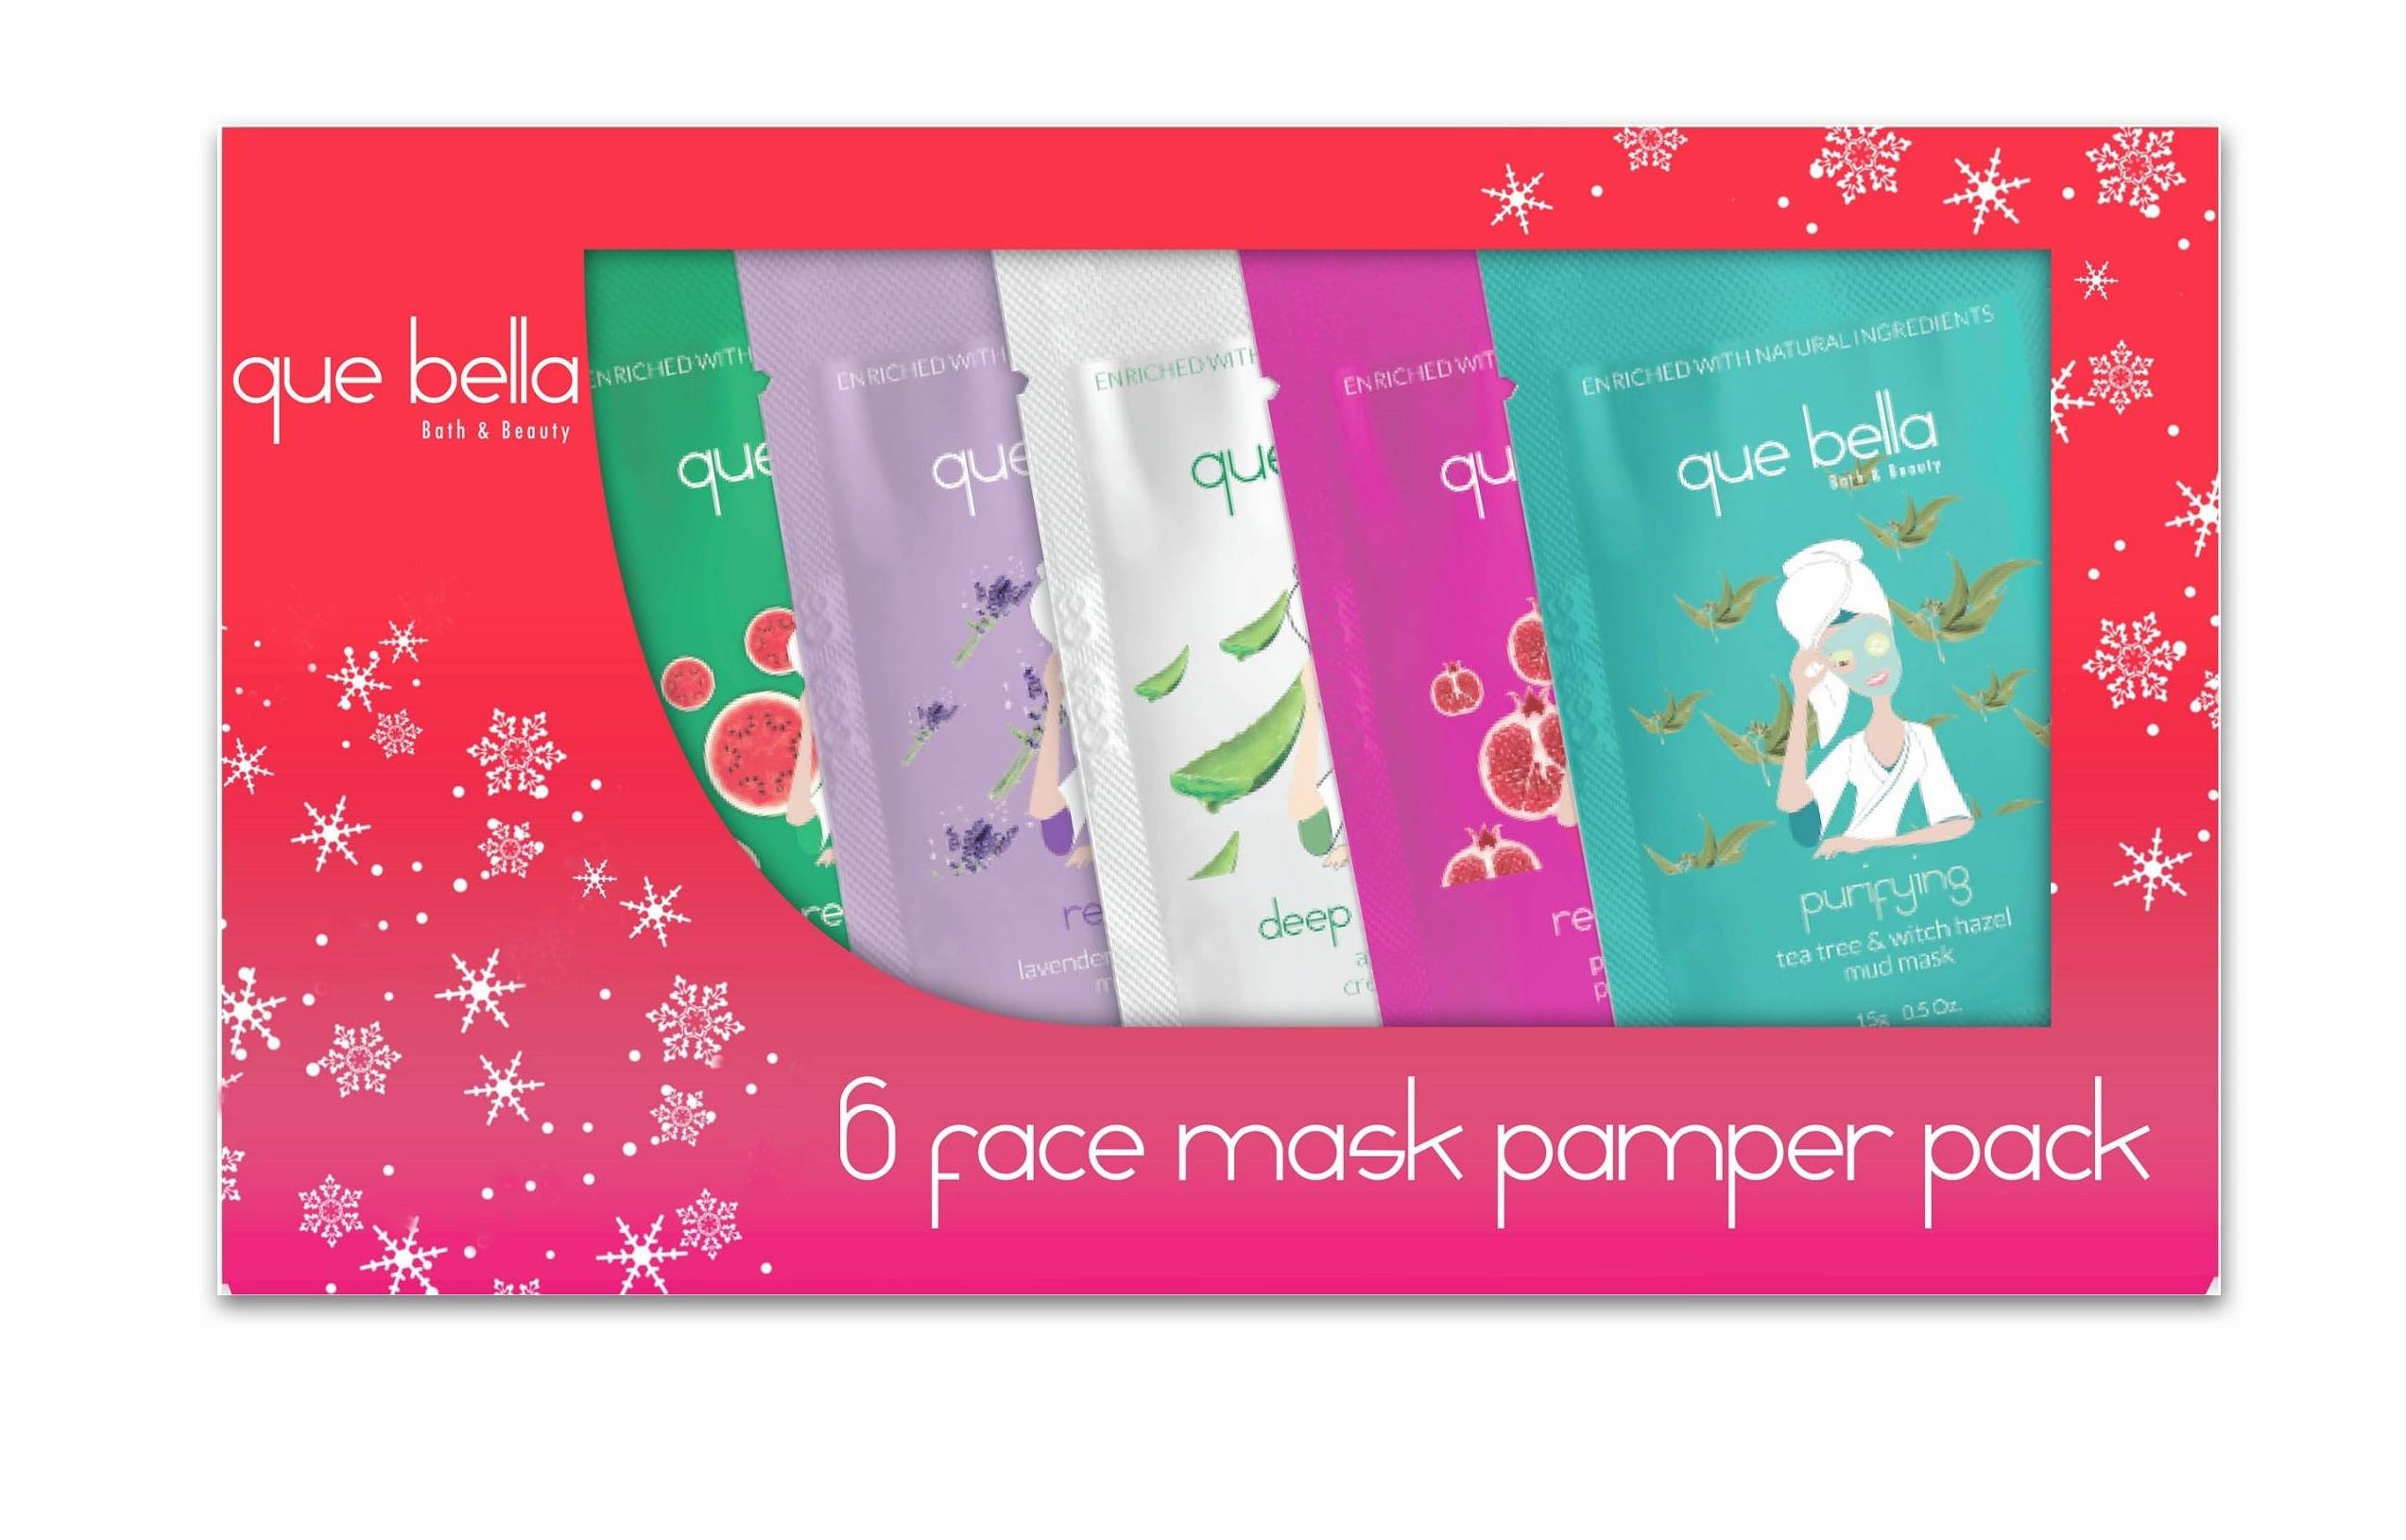 25 Last Minute Beauty Holiday Gifts To Pick Up At Target